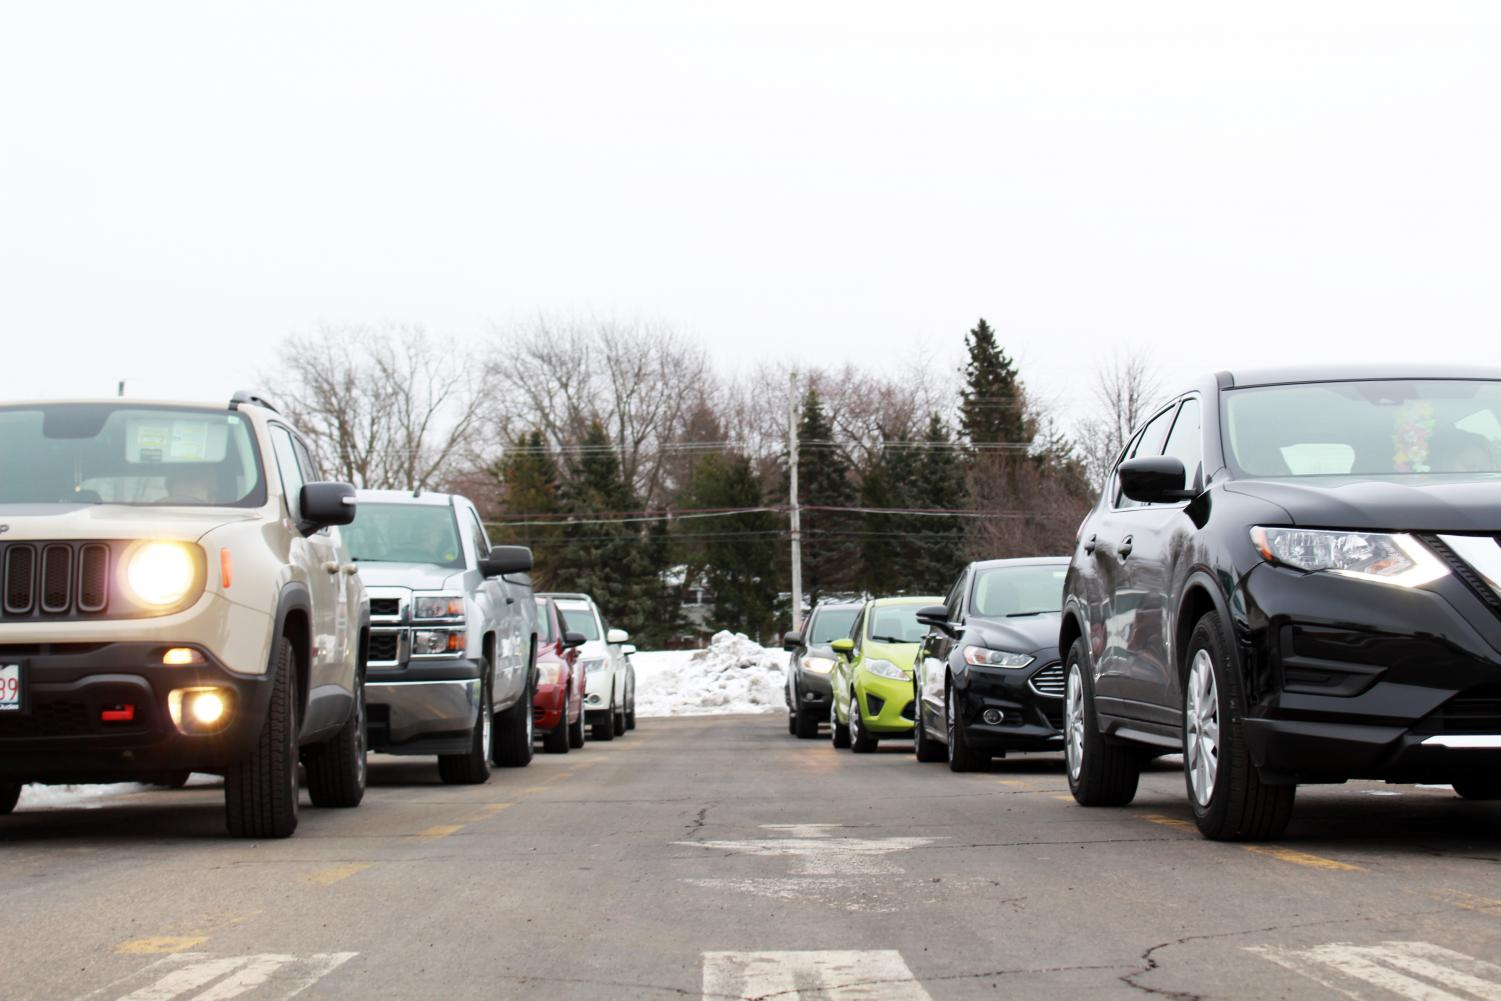 The parking lots at East and West are already hectic — and the behavior of drivers in the drop-off lane make the lot even more treacherous.